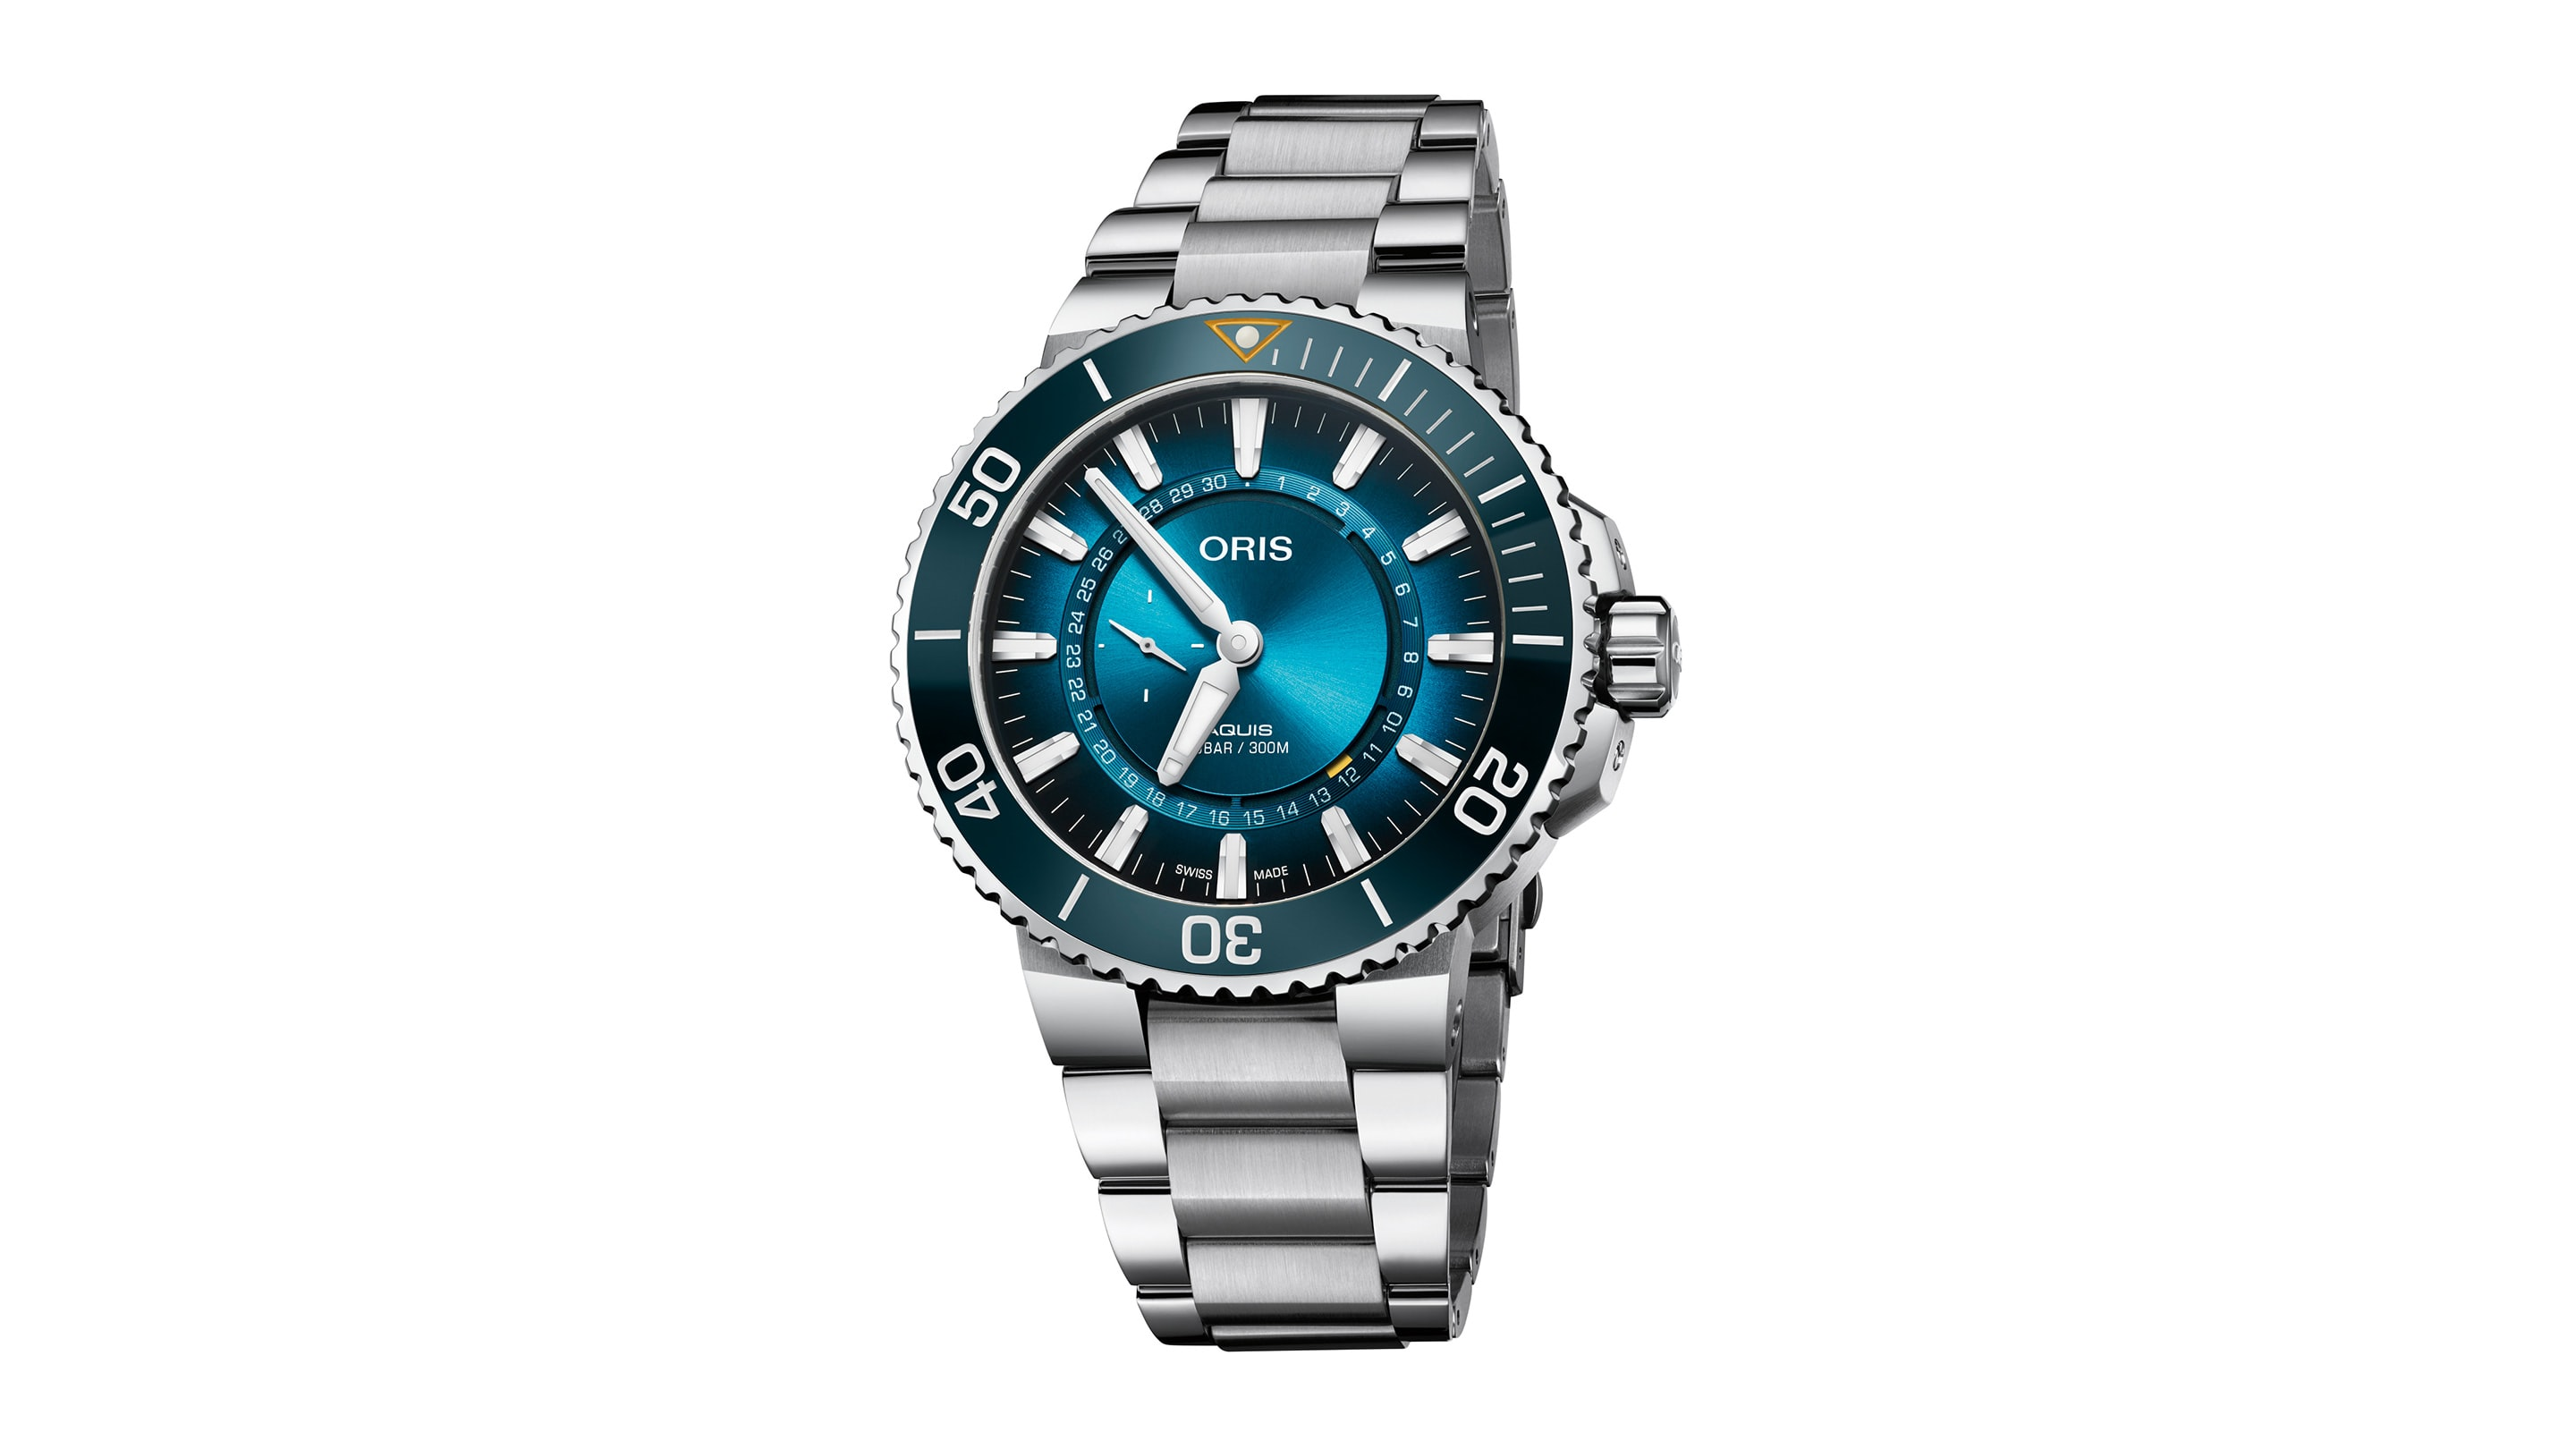 Introducing: Oris Great Barrier Reef Limited Edition III